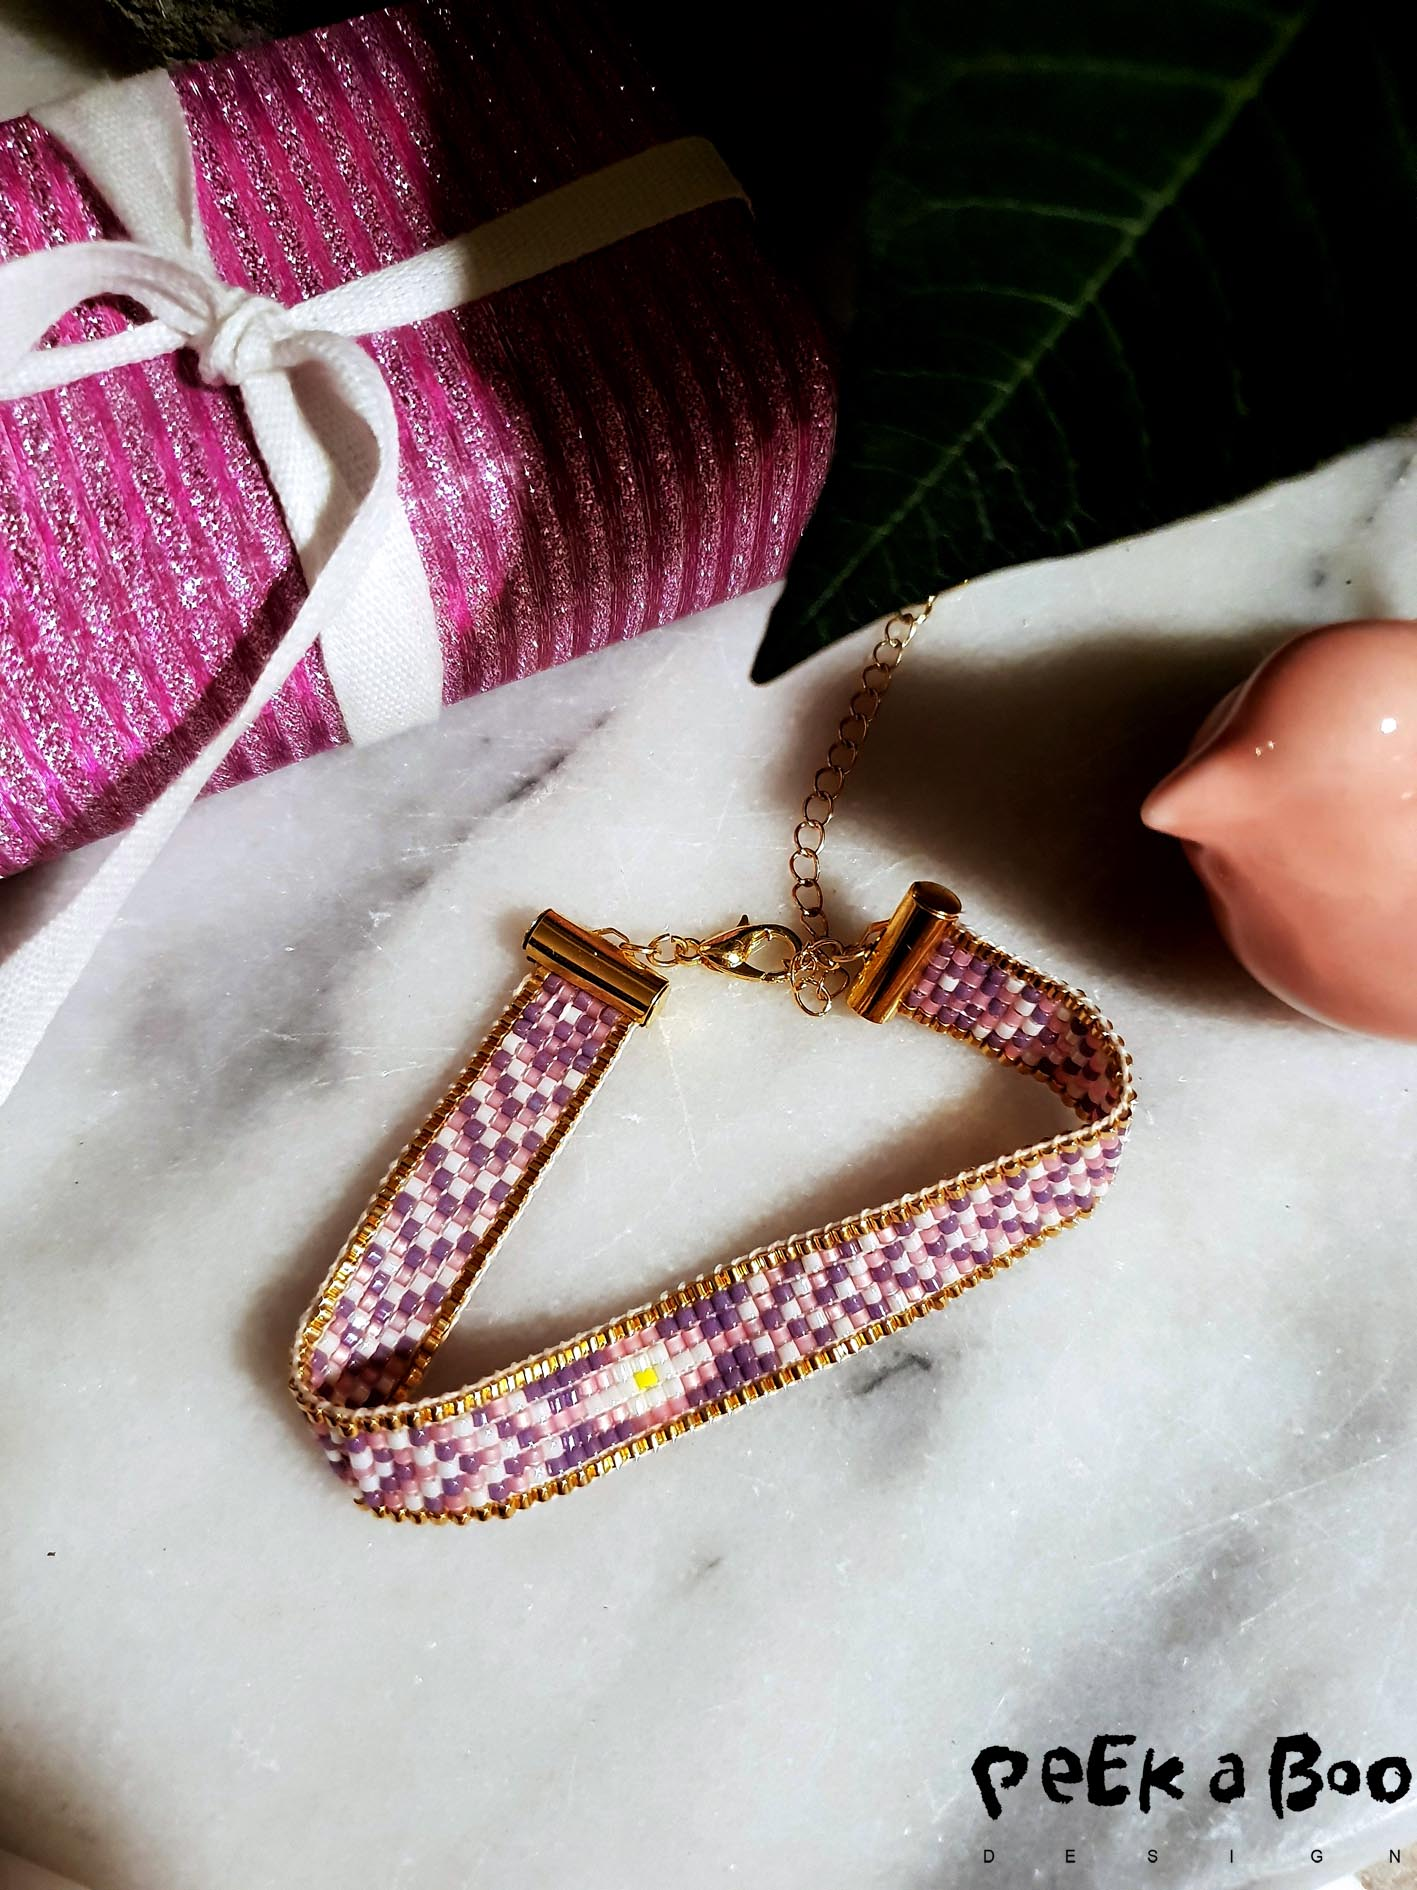 The pretty DIY bracelet made on a bead weave.